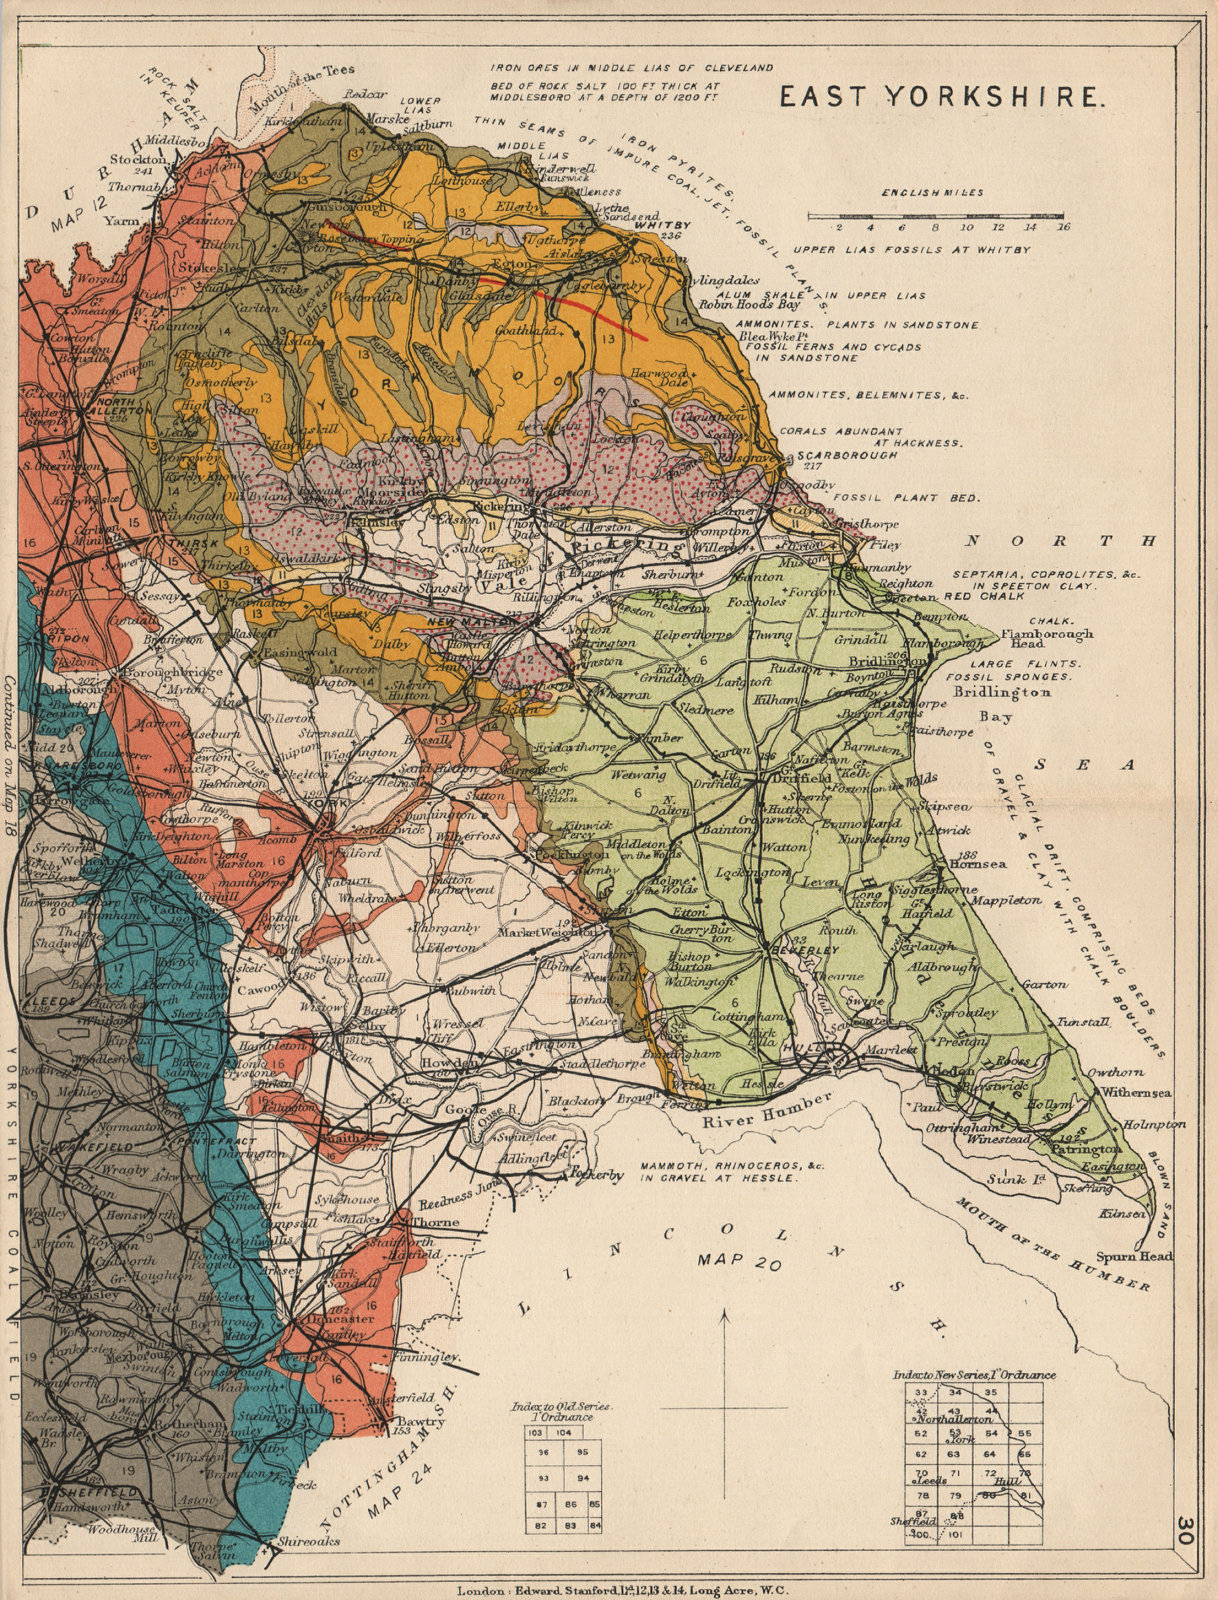 Associate Product EAST YORKSHIRE Geological map. STANFORD 1913 old antique plan chart